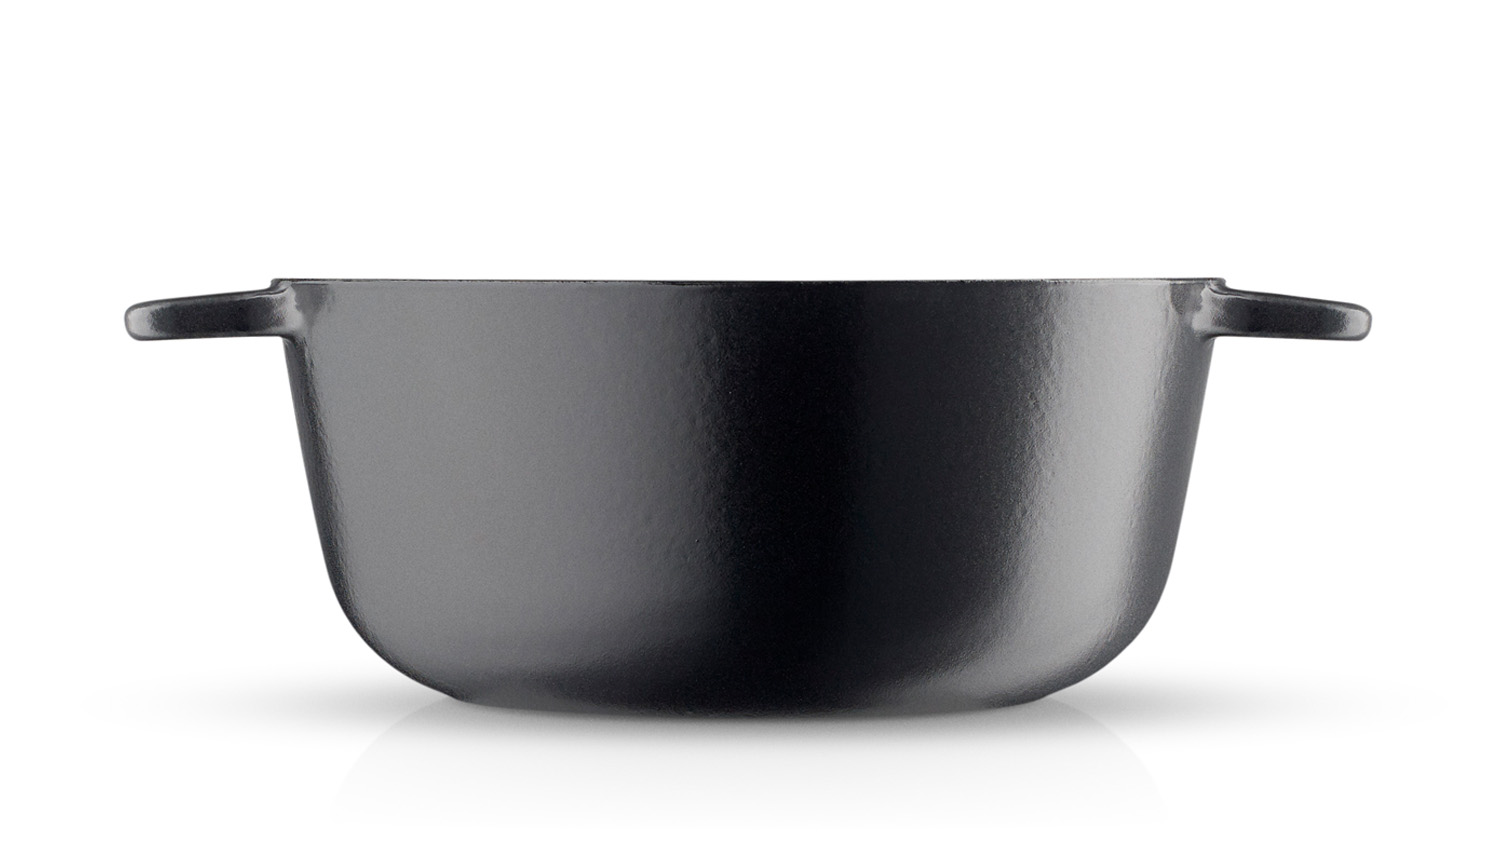 <p>The Cast iron range of pots and frying pans is perfect for slow cooking over a low or medium heat thanks to the excellent heat-conducting and heat-retention properties of the material, which ensures an even heat distribution. Cast iron also withstands very high temperatures.</p> <p><strong>The Cast iron series is good for: Casseroles, simmer dishes, roasts (slow roasting) and baking bread.</strong></p>